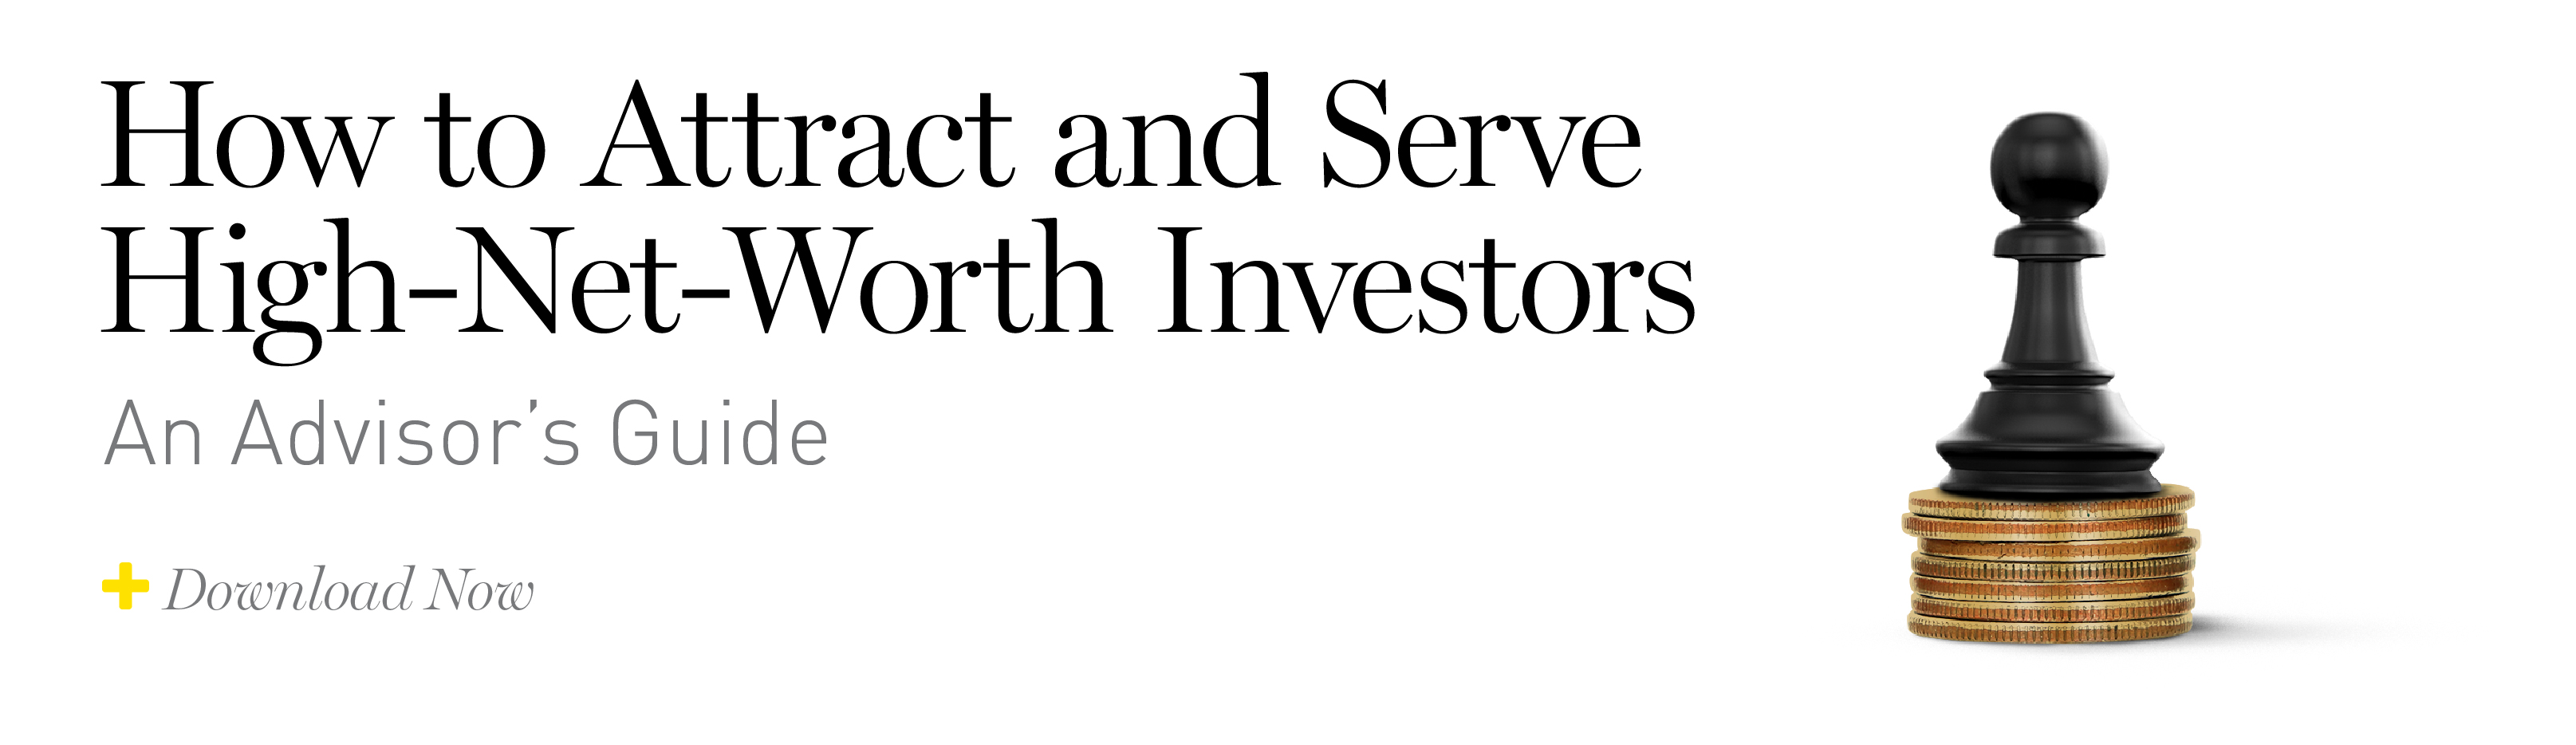 Download How to Attract and Serve High-Net-Worth Investors - An Advisor's Guide